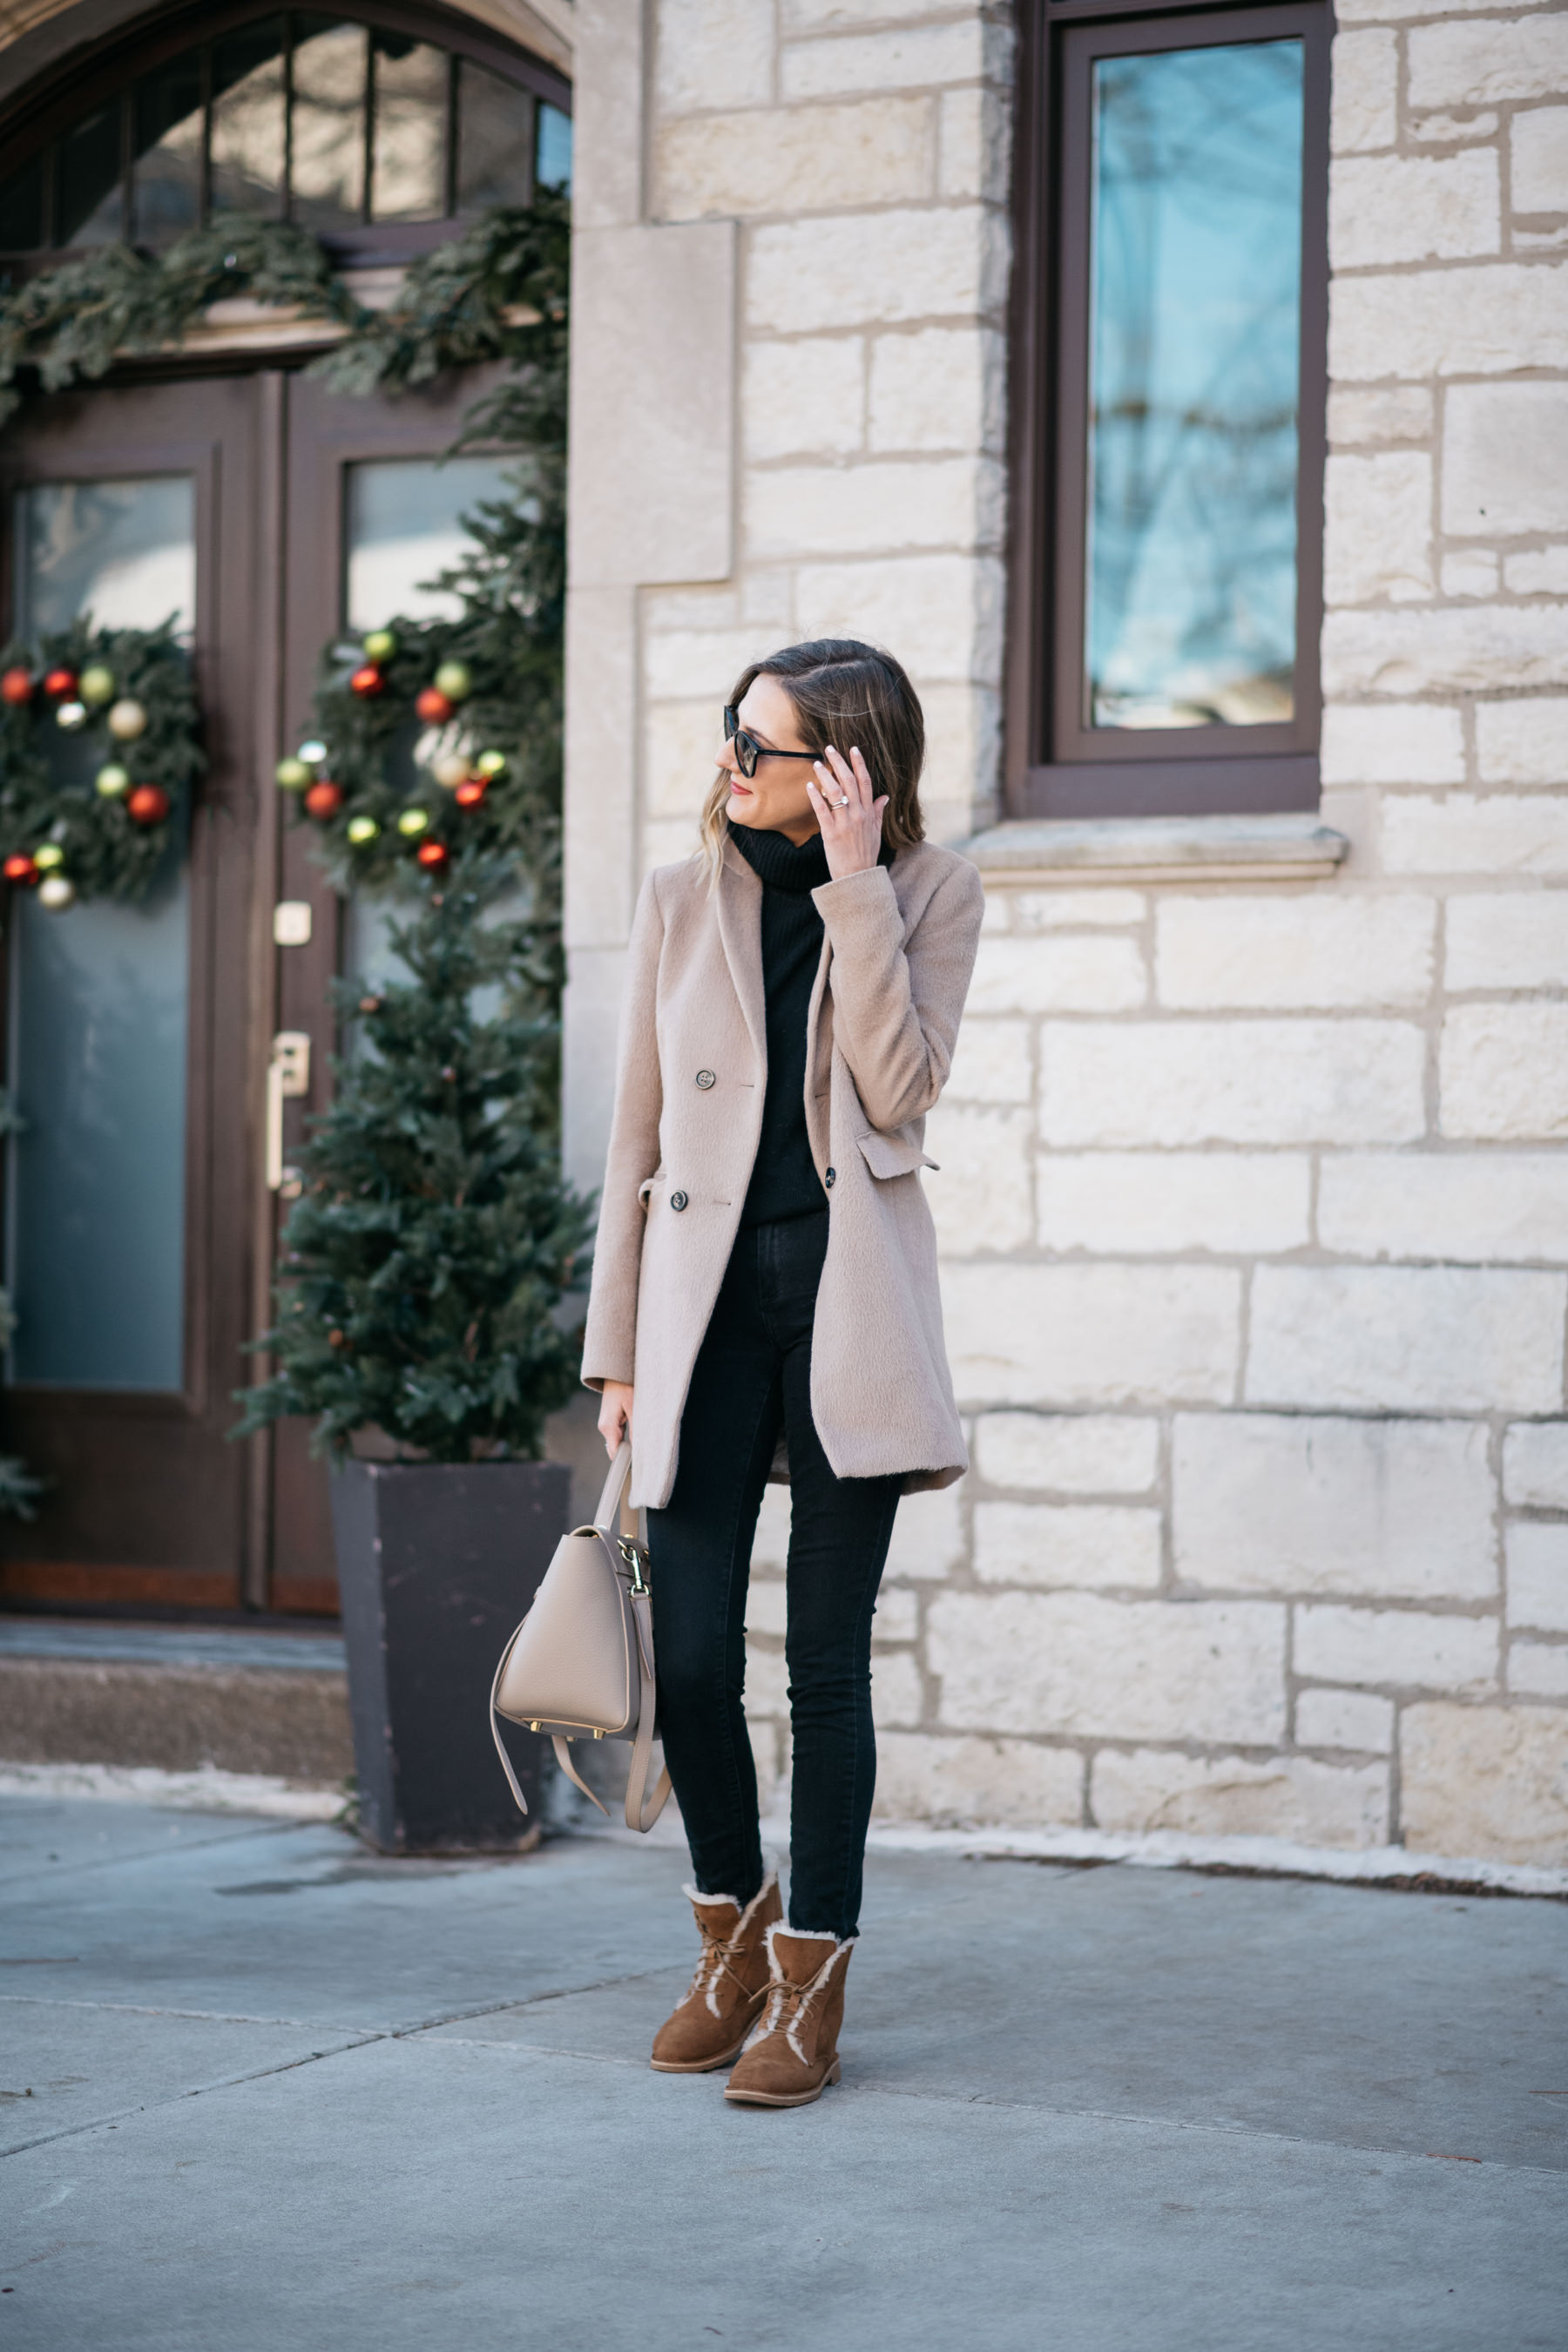 How To Style Ugg Boots For Everyday With Jeans Winter Fall